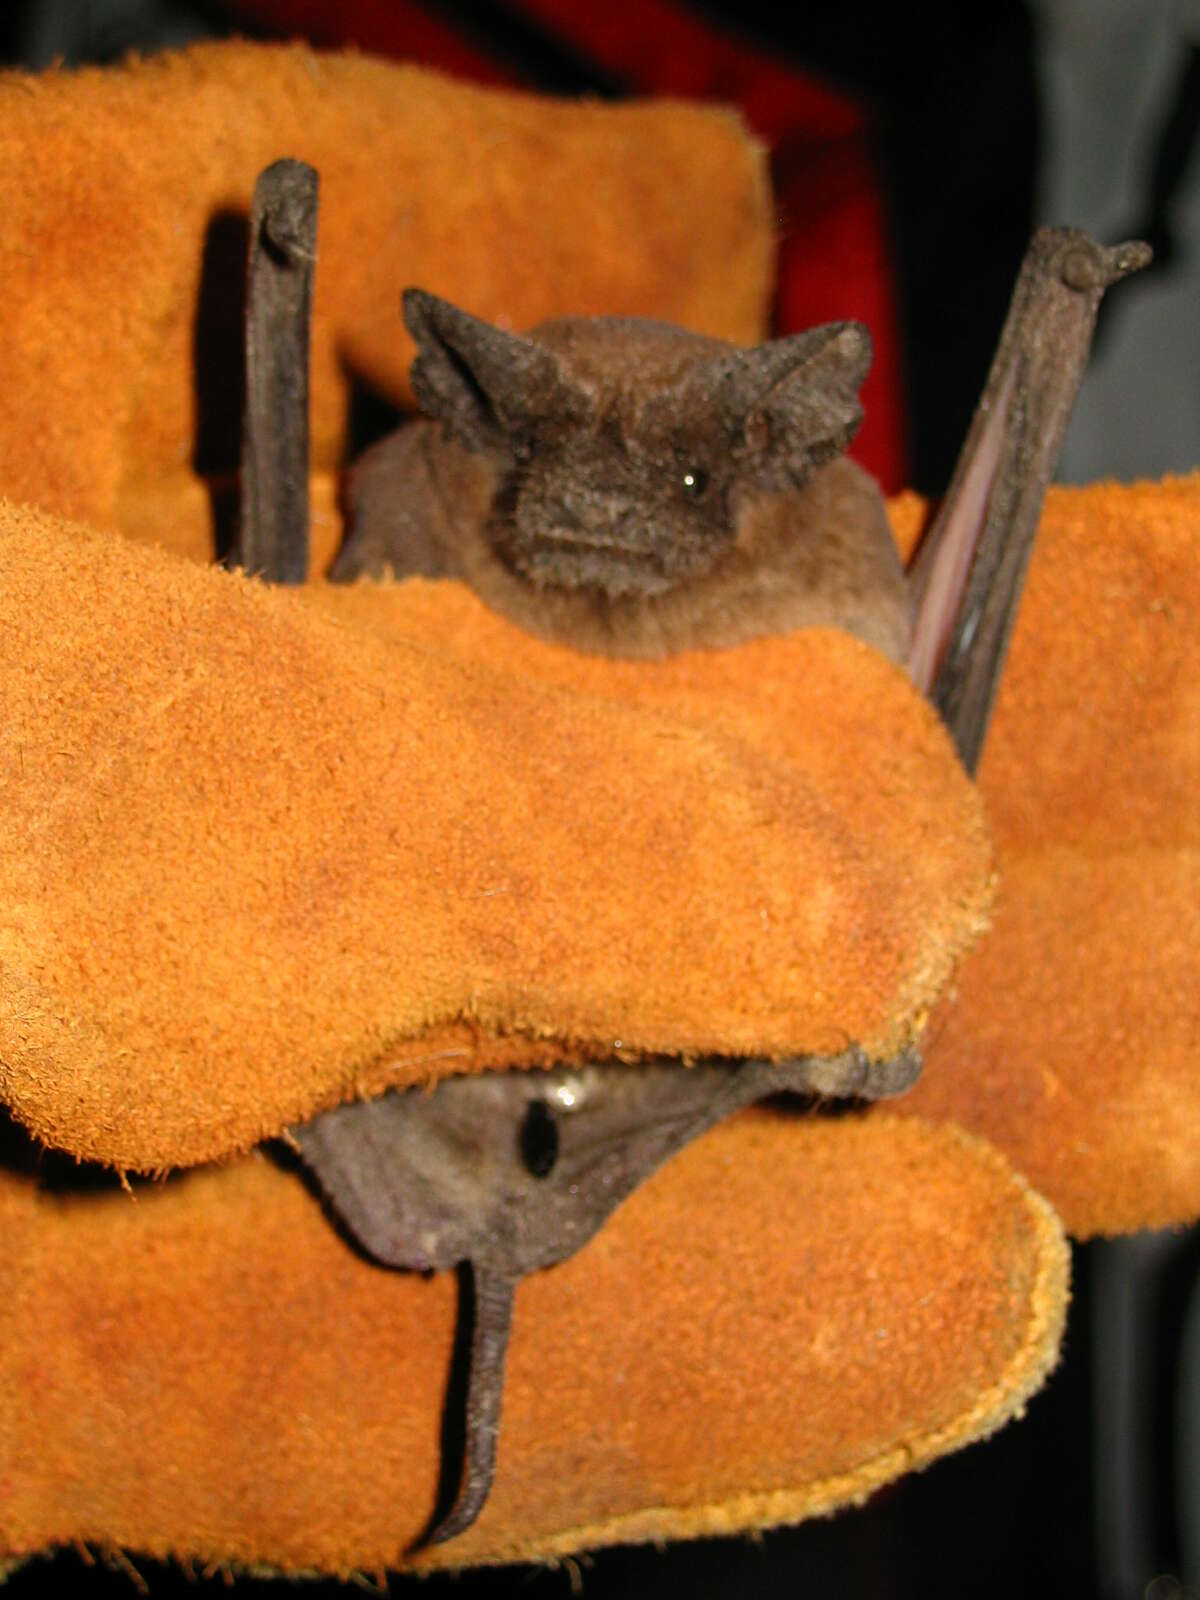 Your friend More than 70 percent of bat species subsist on insects. One little brown bat can eat 1,000 mosquitoes in an hour.